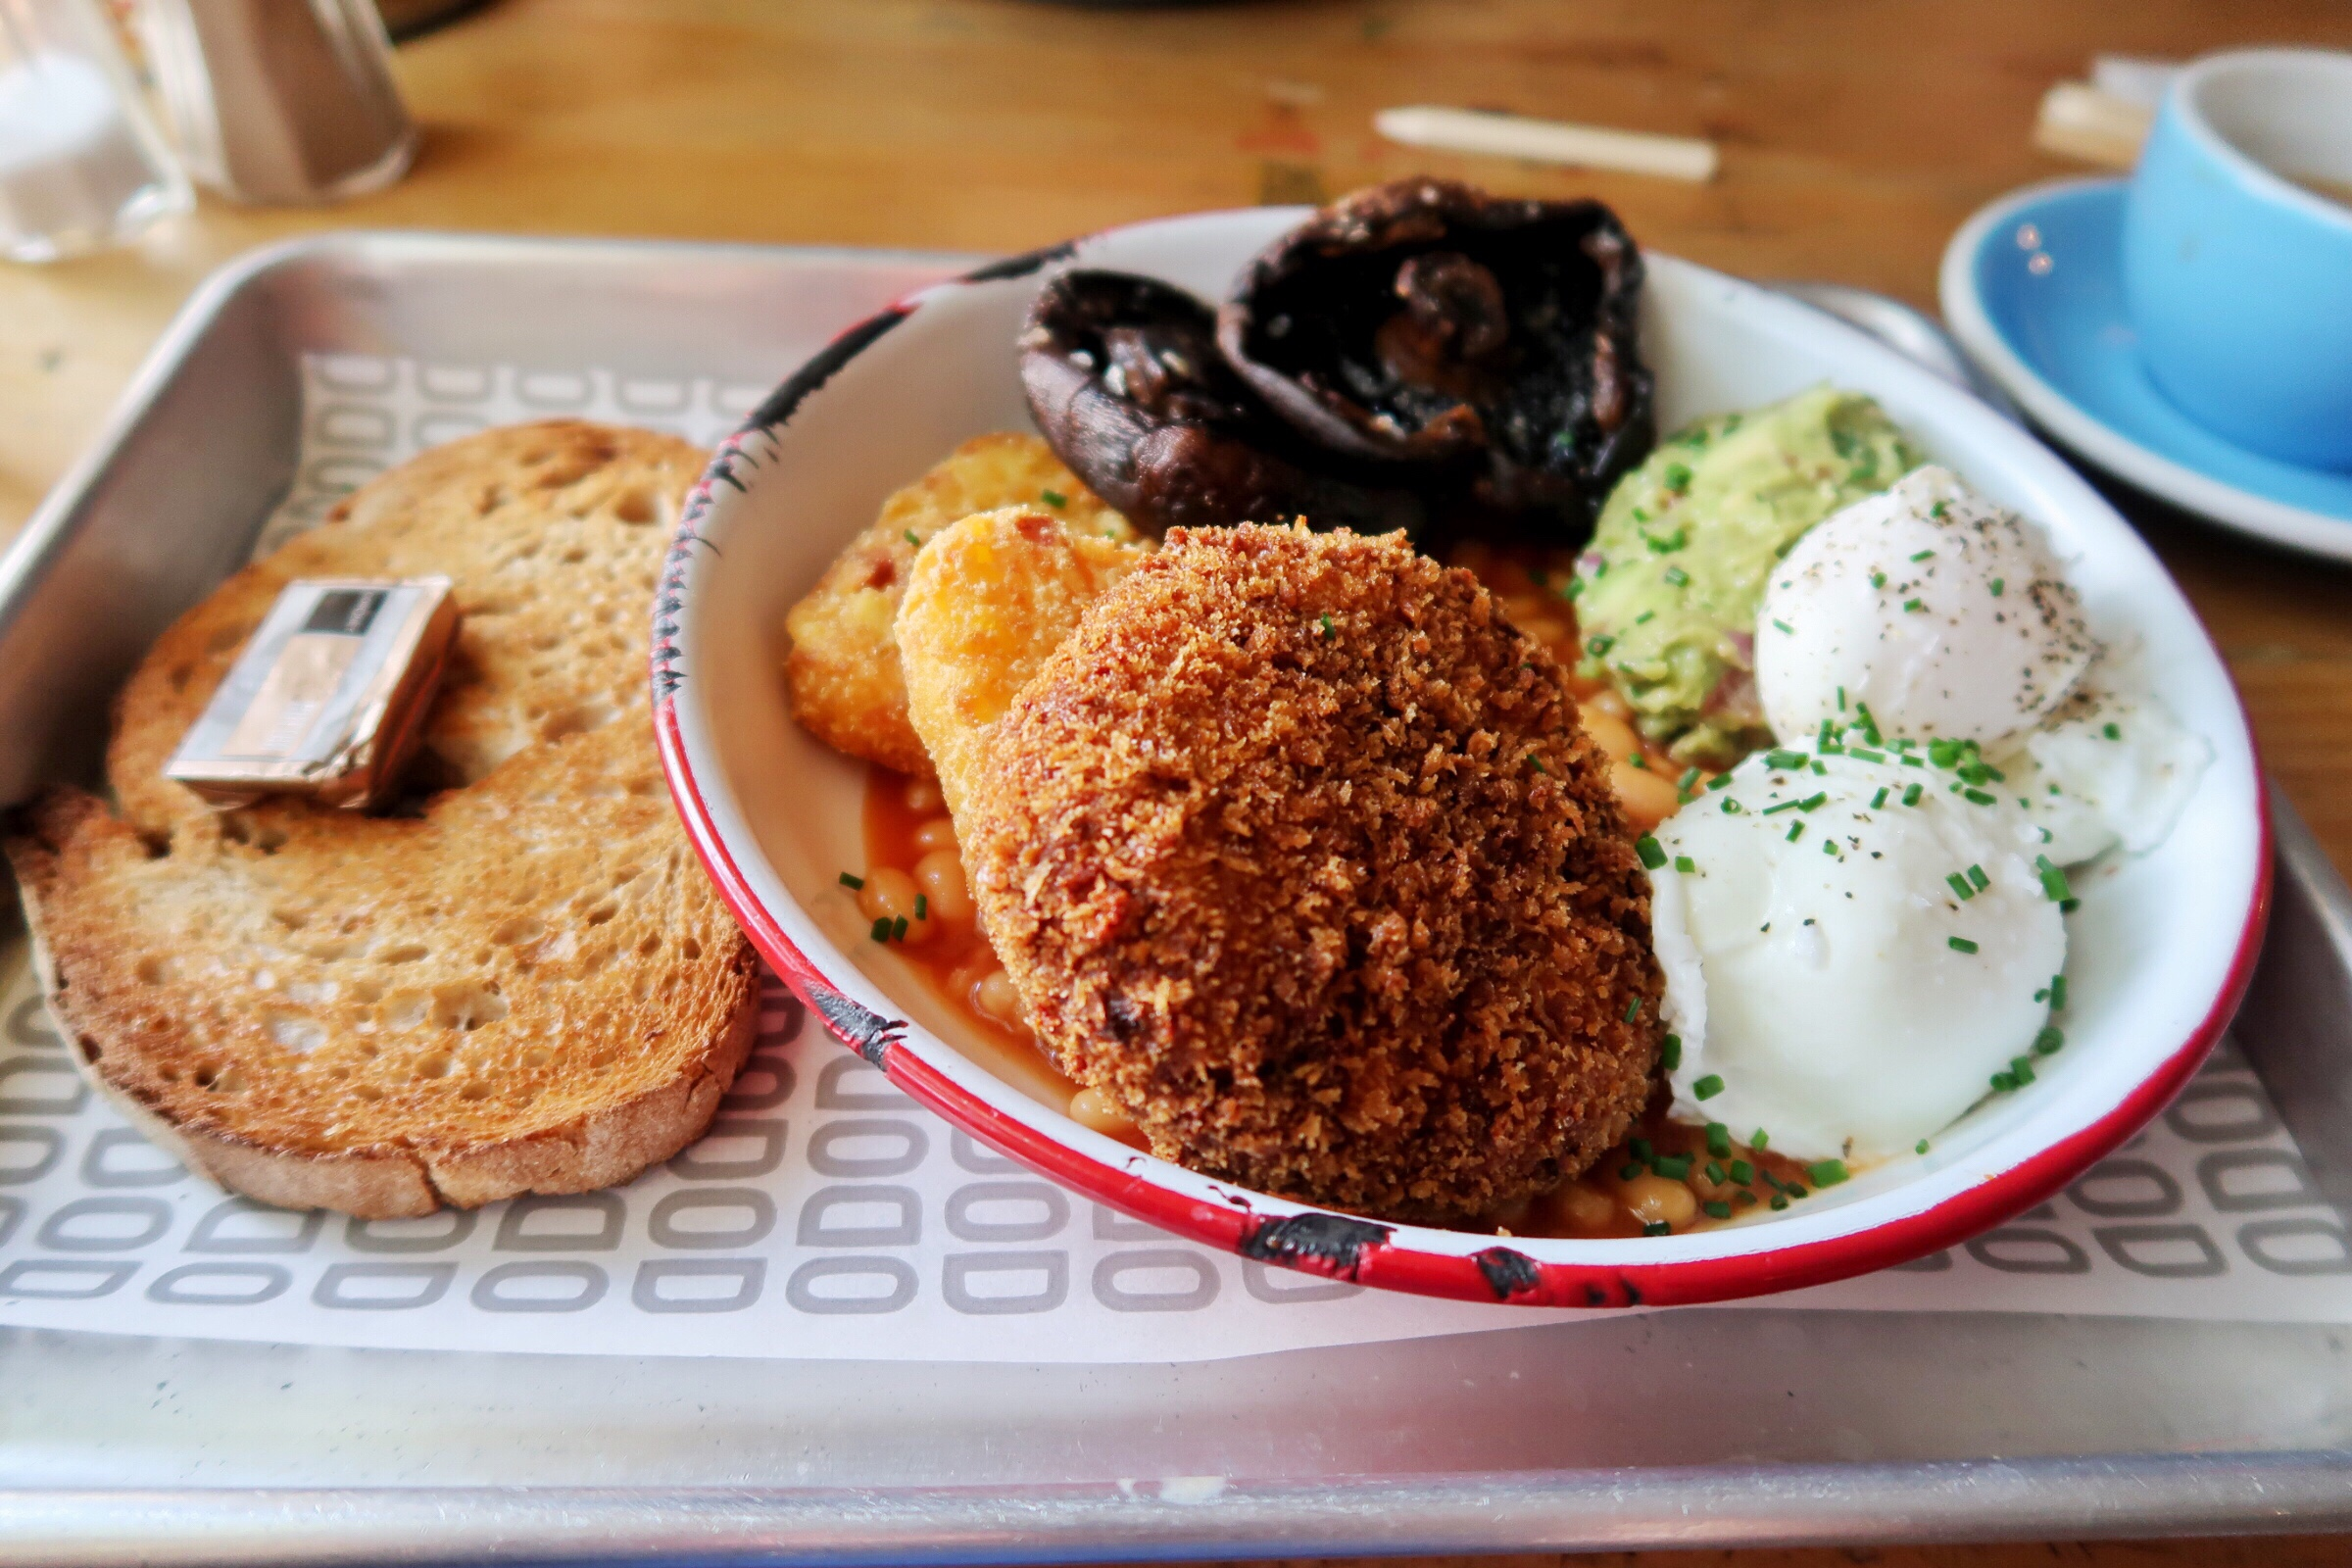 The absolutely delicious looking Mighty Vegetarian Brunch at the Bottle of Sauce in Cheltenham, consisting of perfectly poached eggs, a leek and cheddar crumbed patty, sourdough toast, amazing mushrooms, hashbrowns and beans. So yummy!